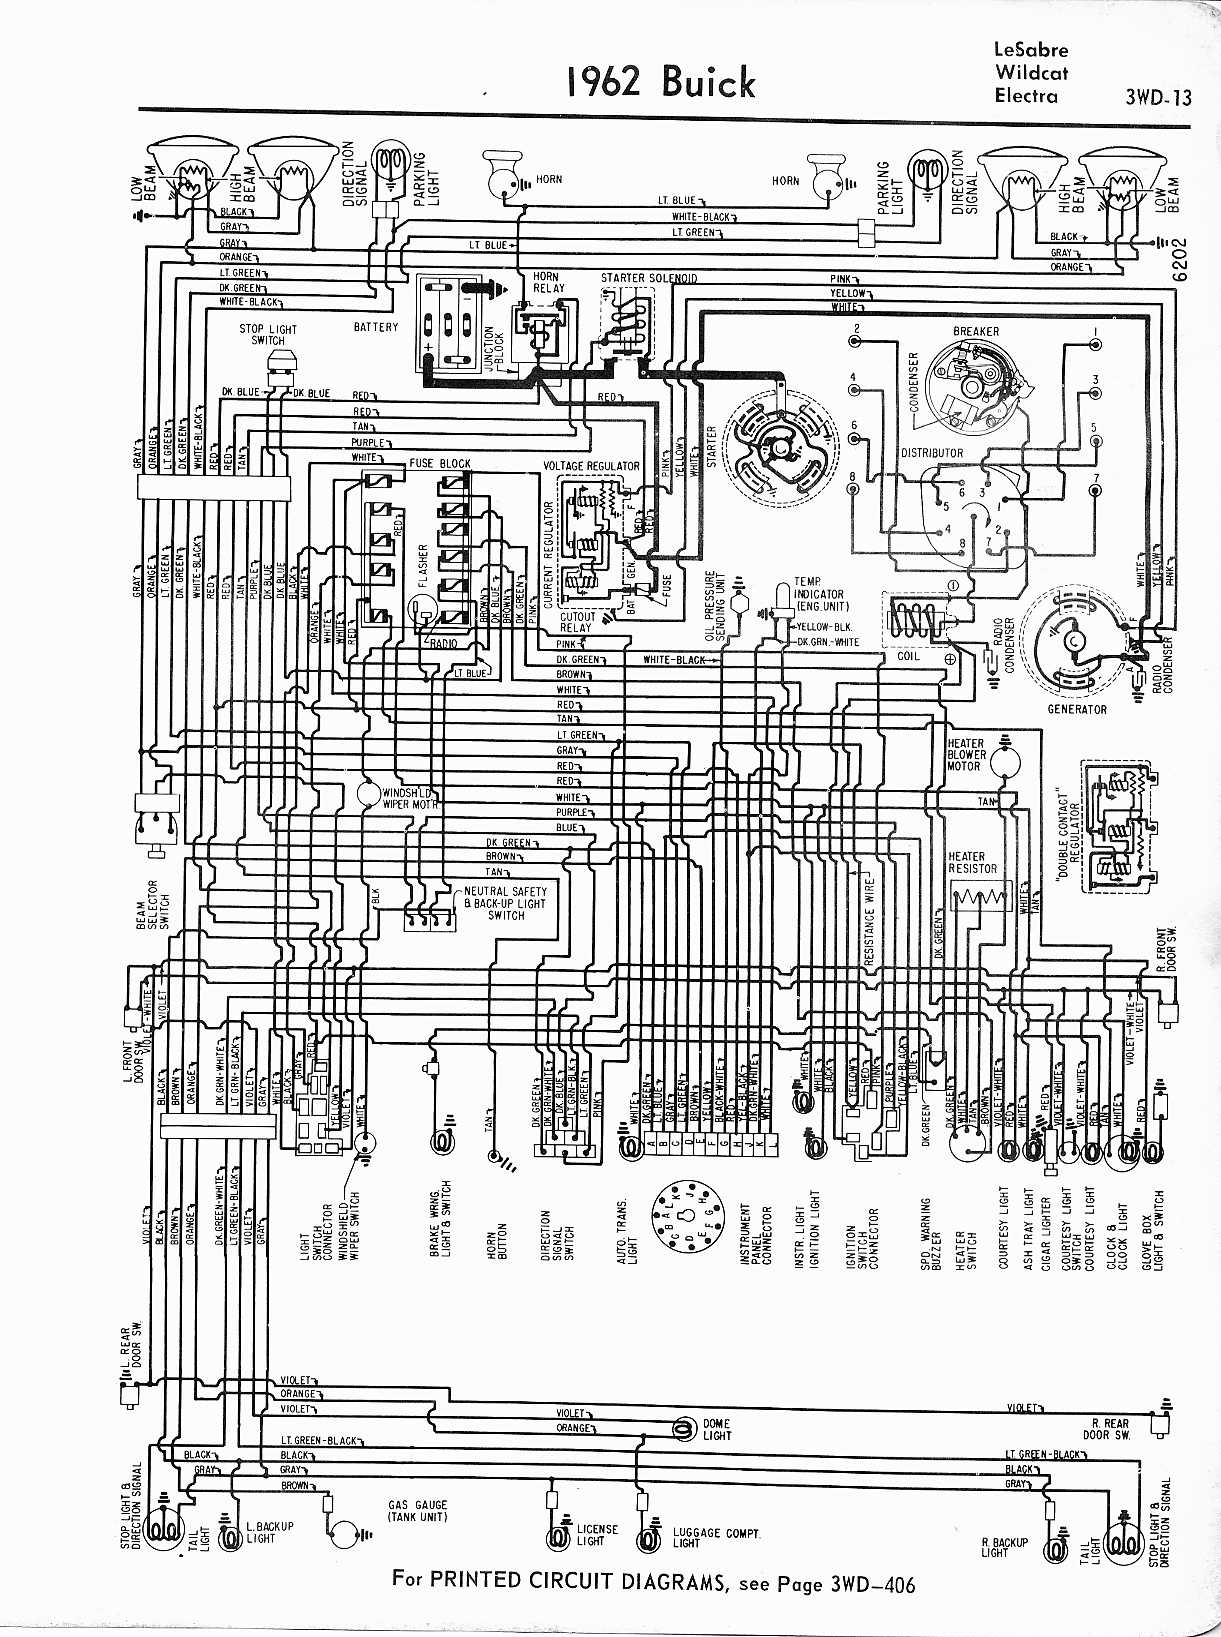 1954 chrysler new yorker wiring diagram wiring library 1954 cadillac wiring diagrams